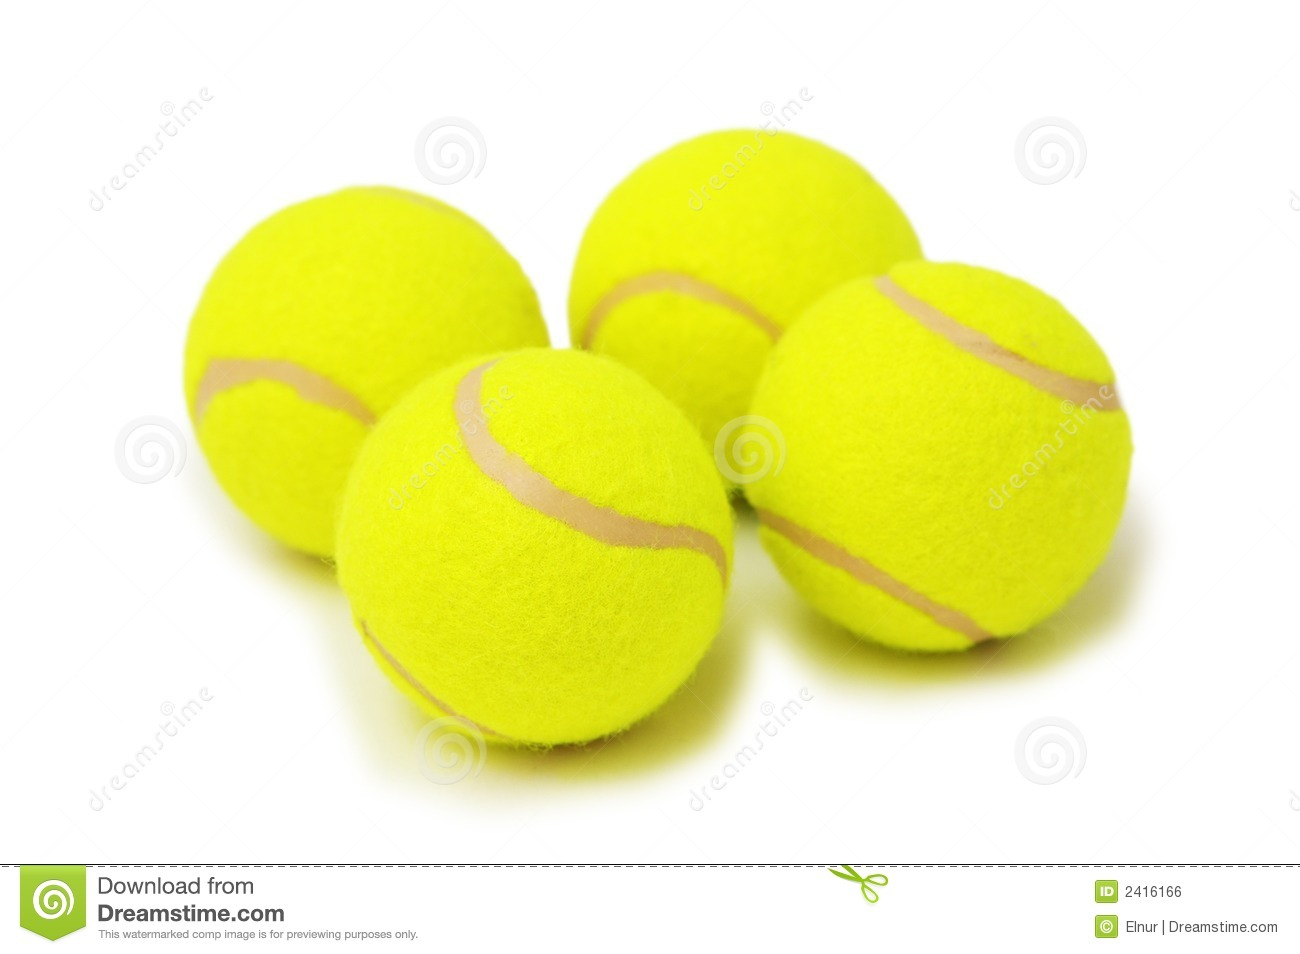 Four Tennis Balls Isolated Royalty Free Stock Image - Image: 2416166